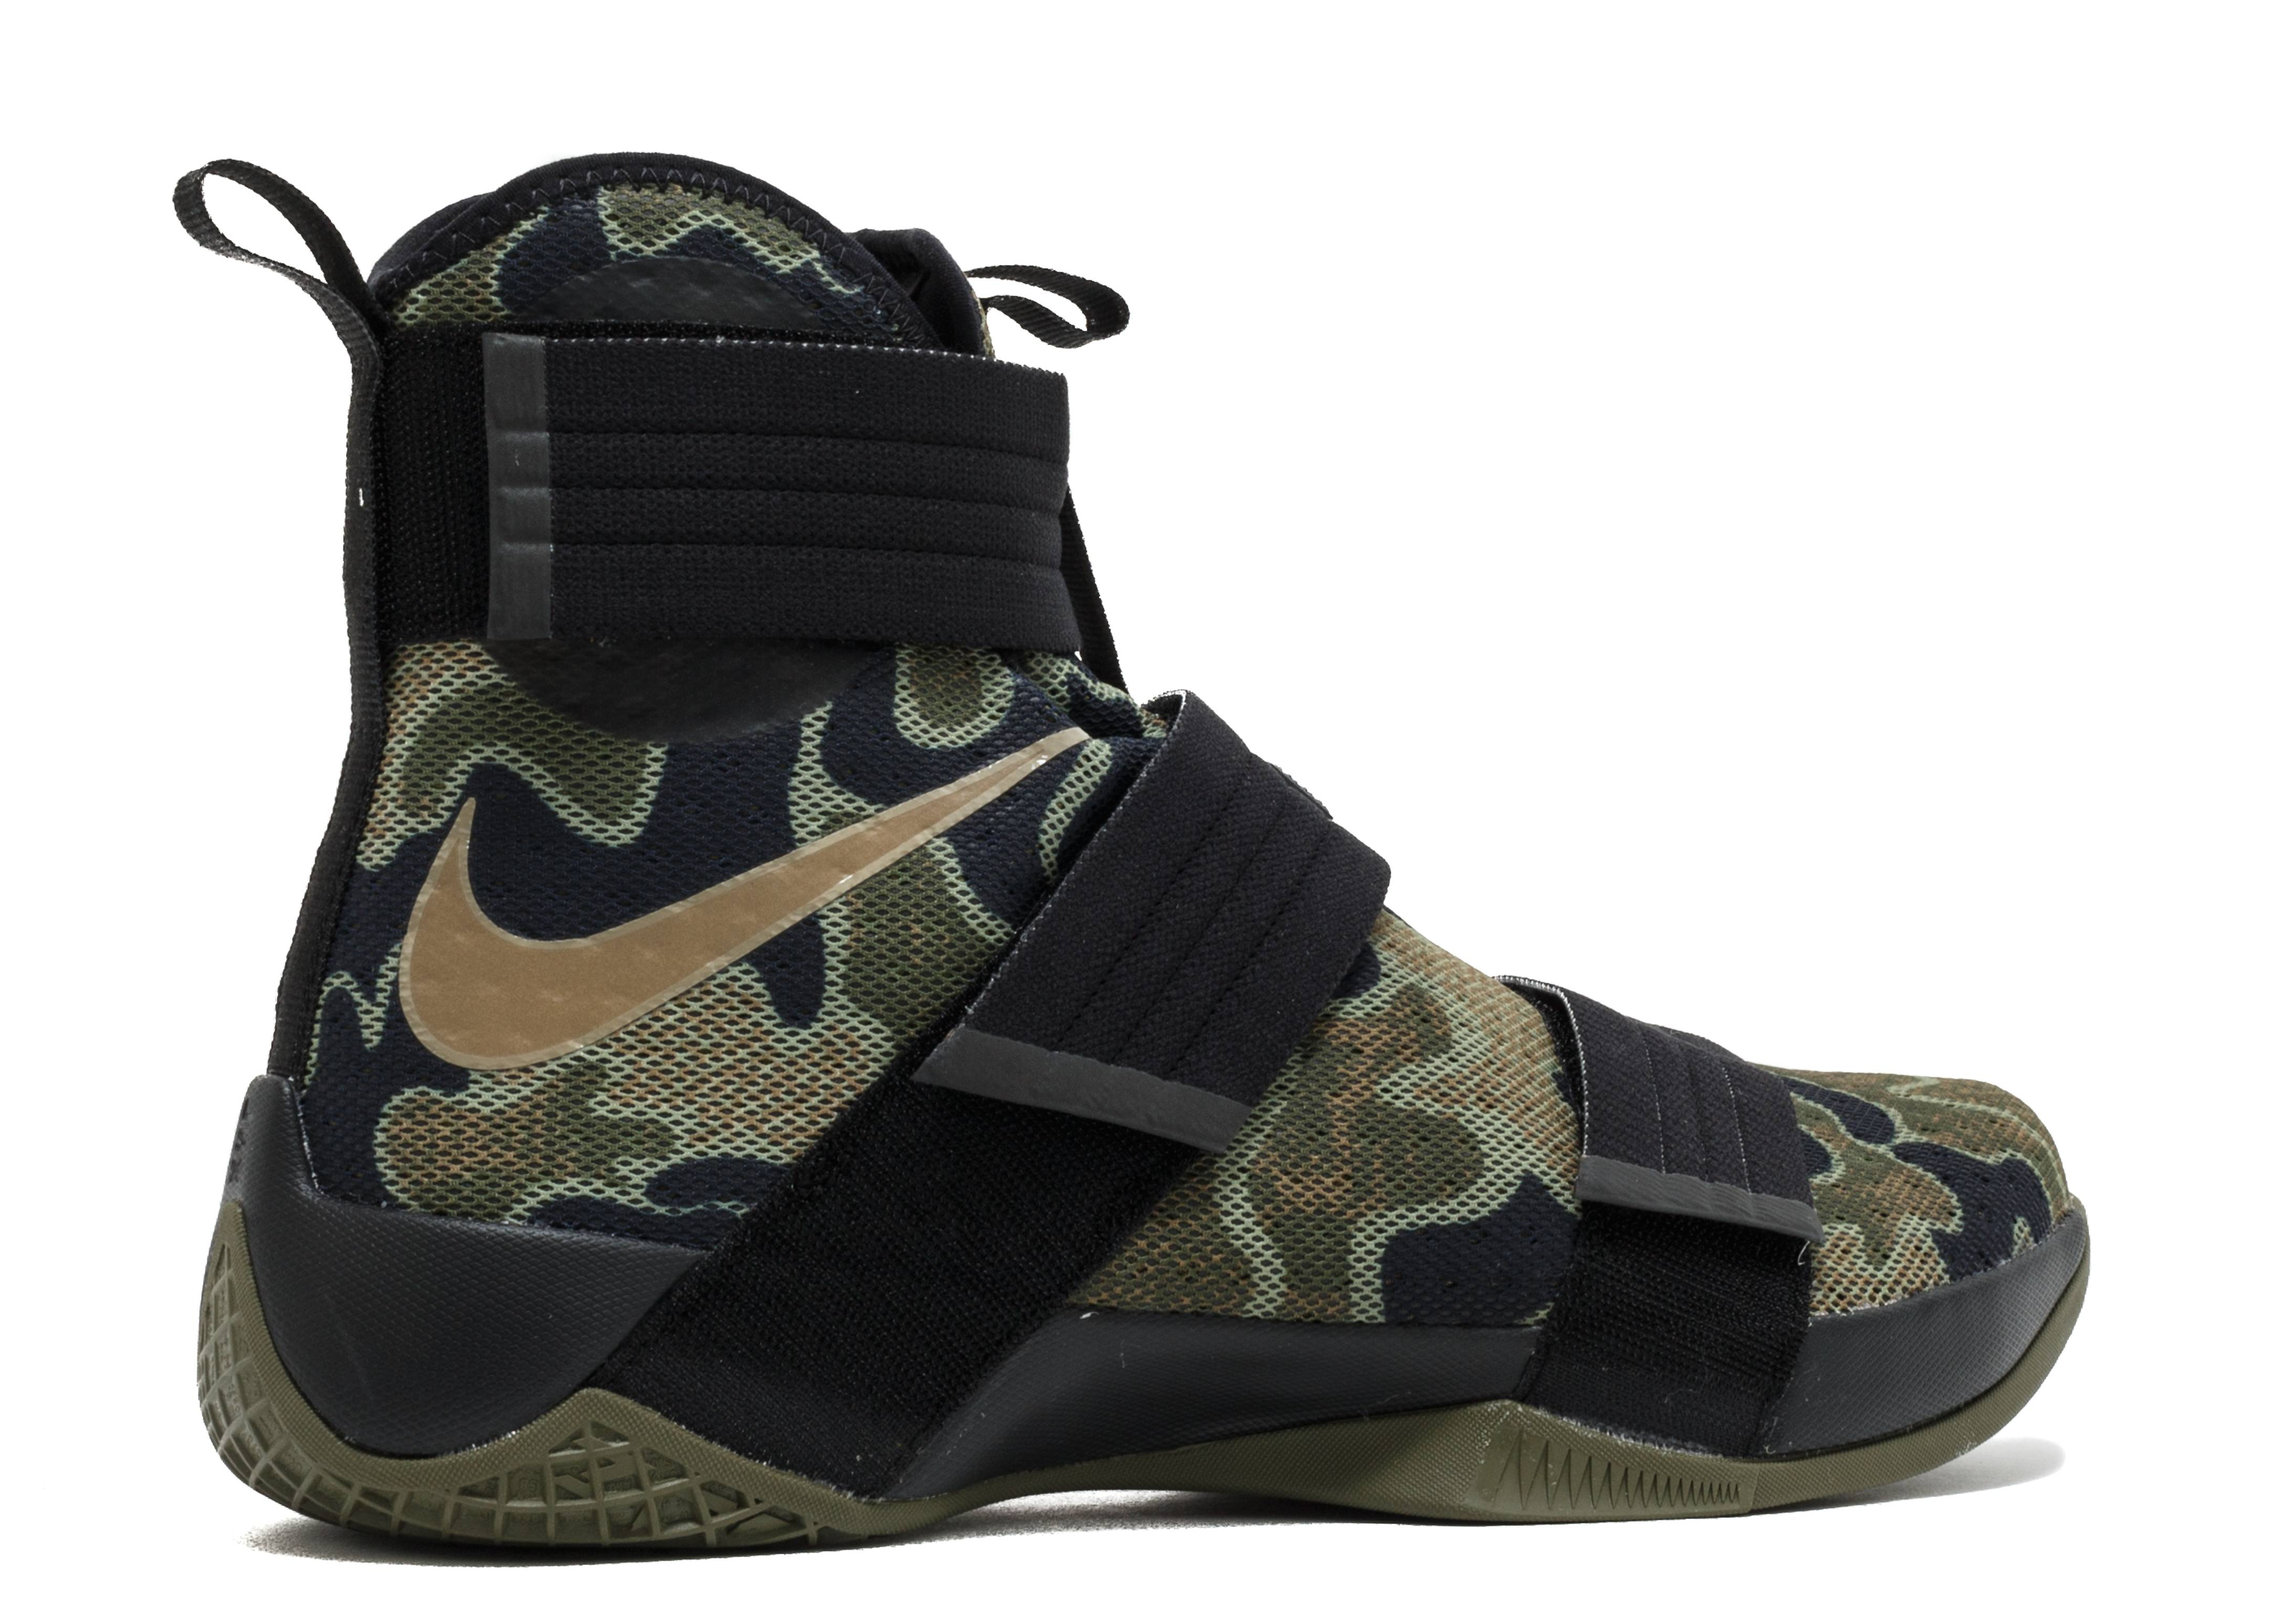 the best attitude 5f9c3 ea521 italy lebron soldier 10 army camo with special packaging nike 844378 022  green black brown flight